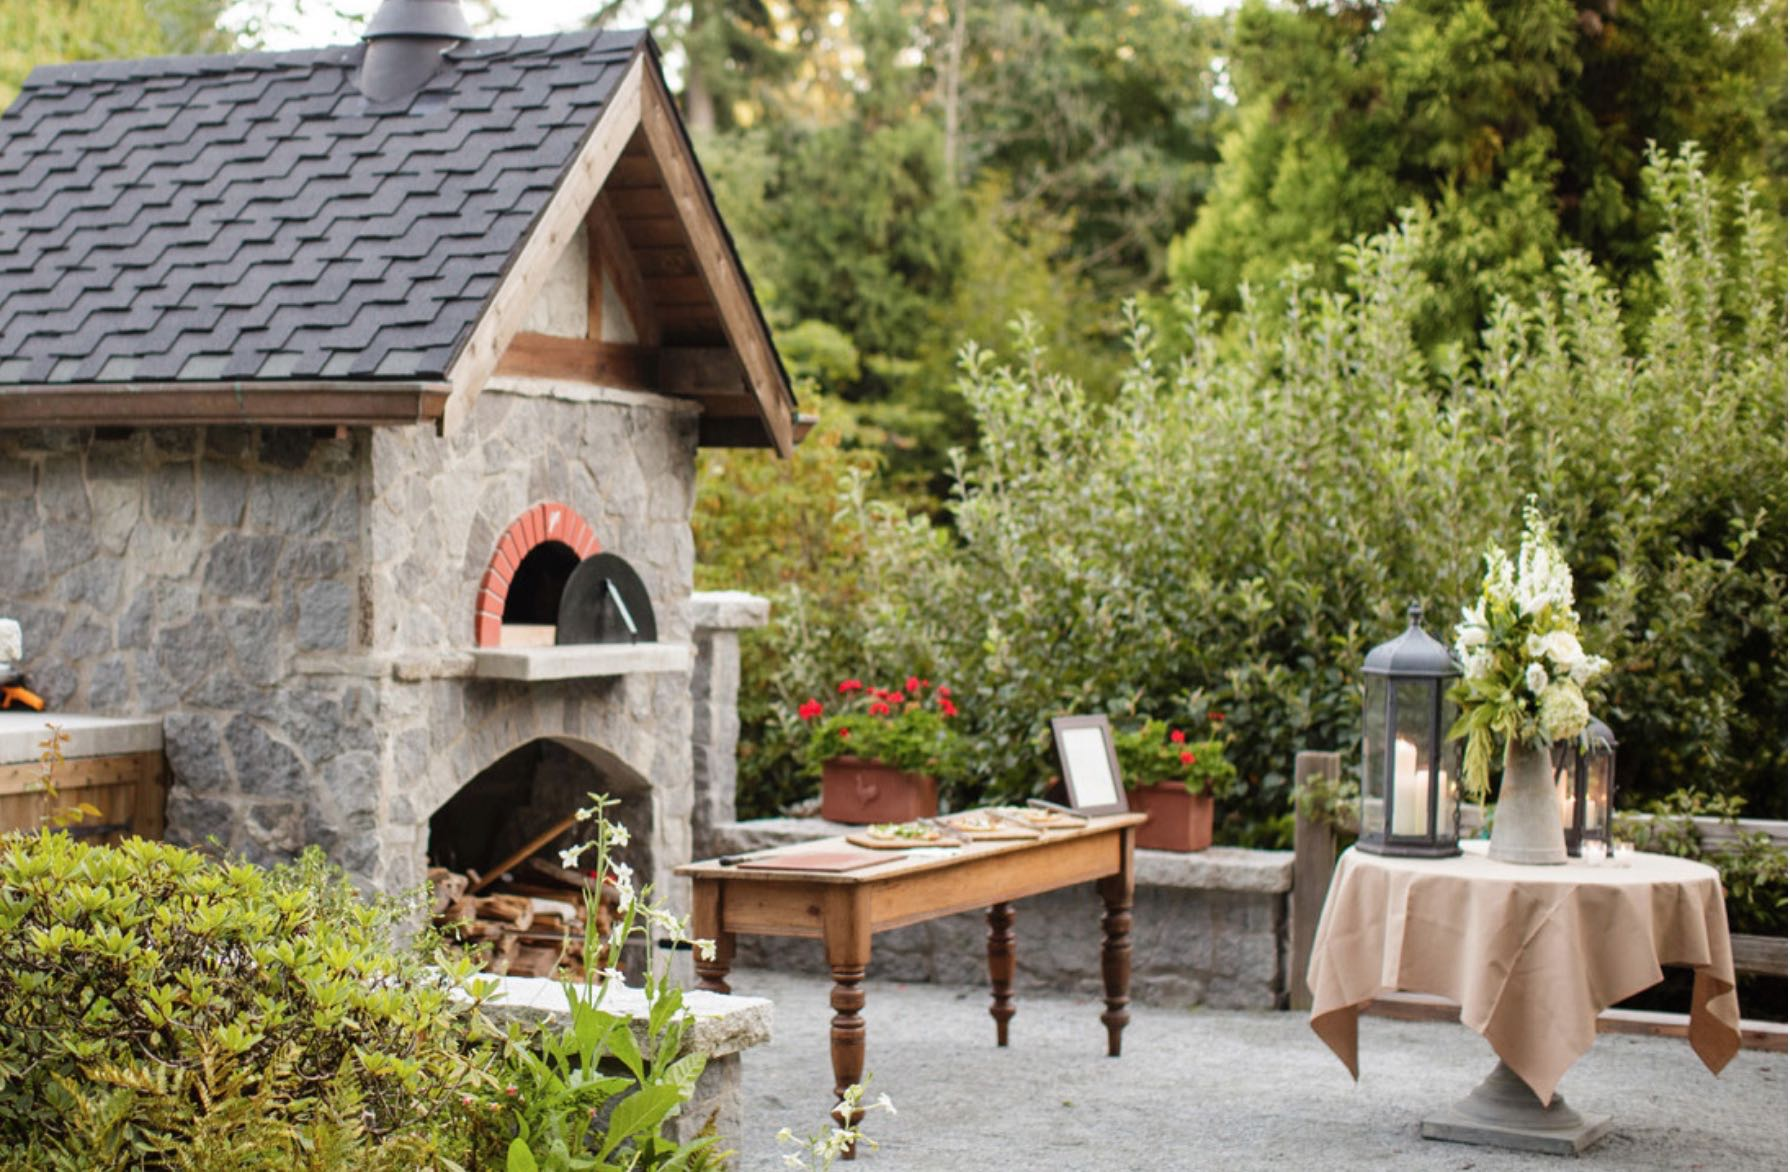 Wood-fired pizza oven at Bella Luna Farms